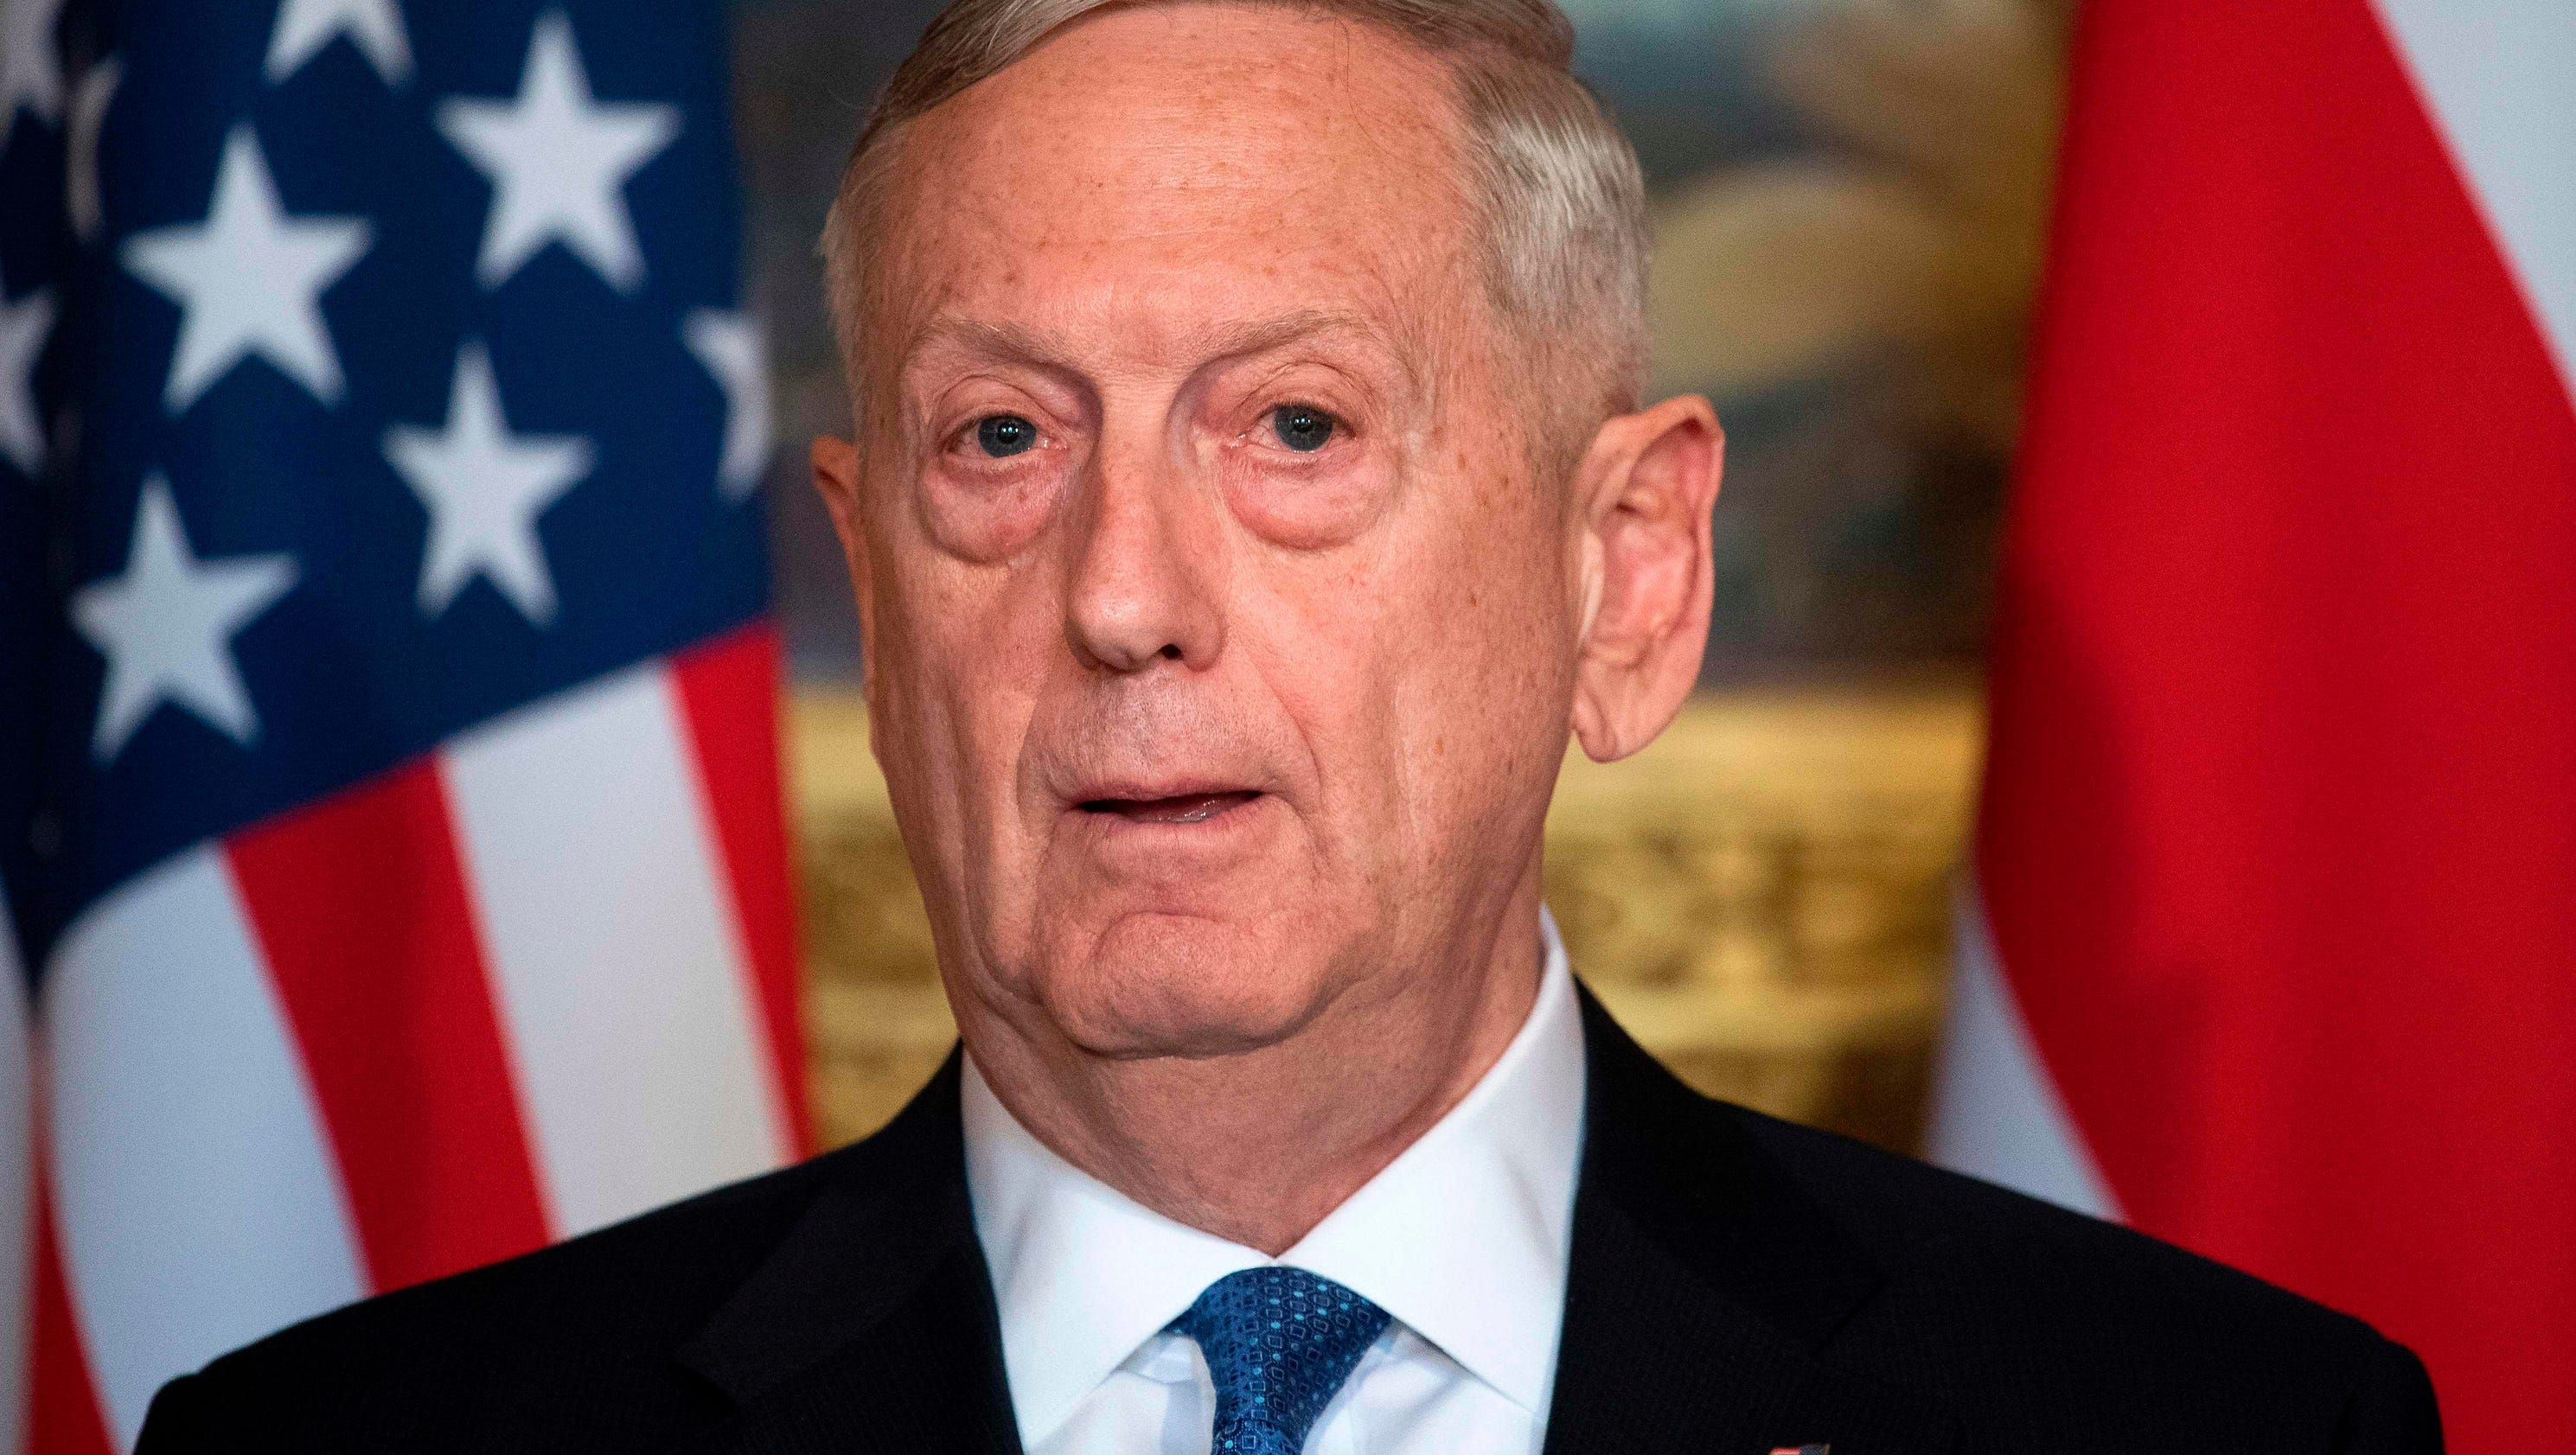 U.S. defense chief Mattis says North Korea has 'got to be stopped'